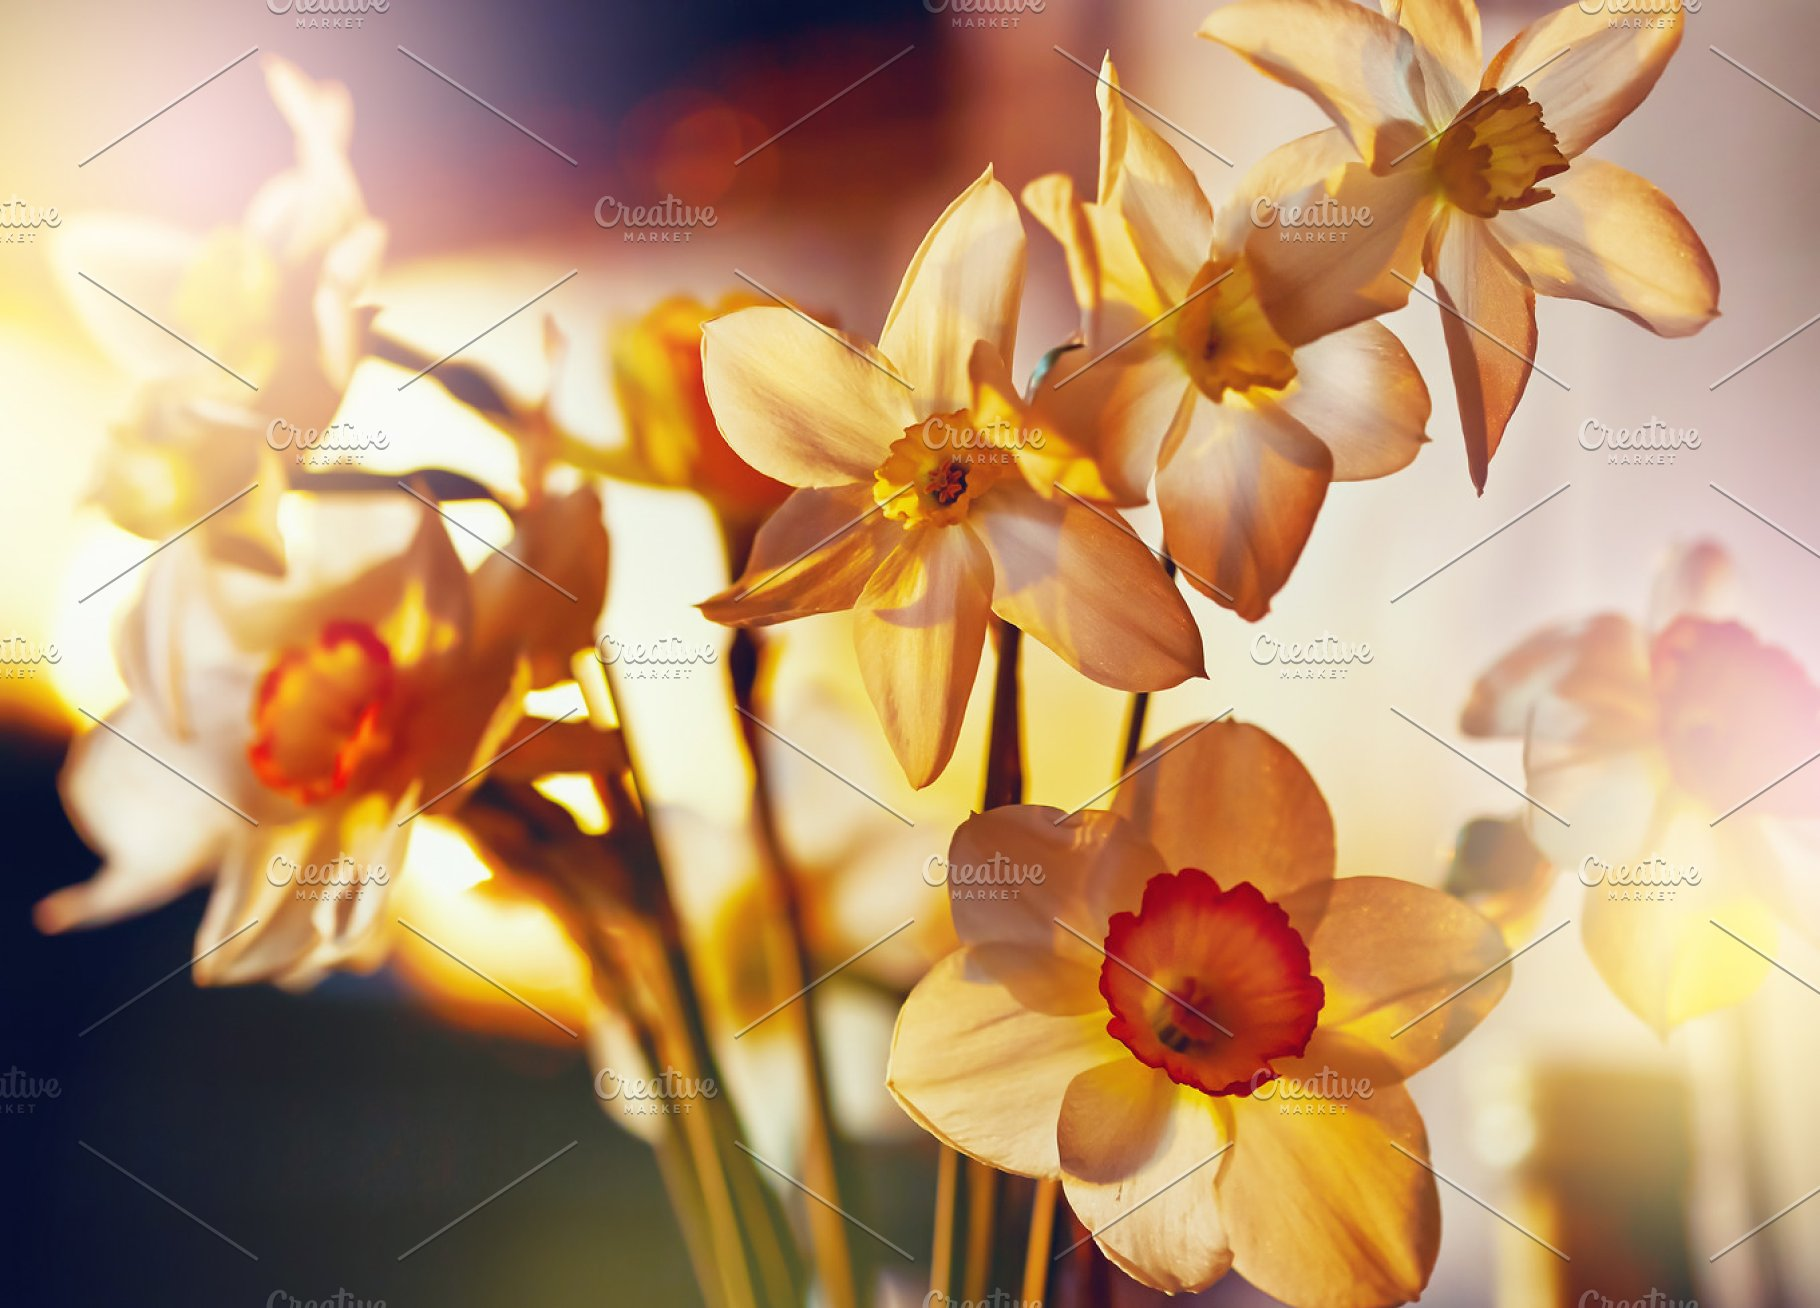 Spring Flowers Daffodils High Quality Nature Stock Photos